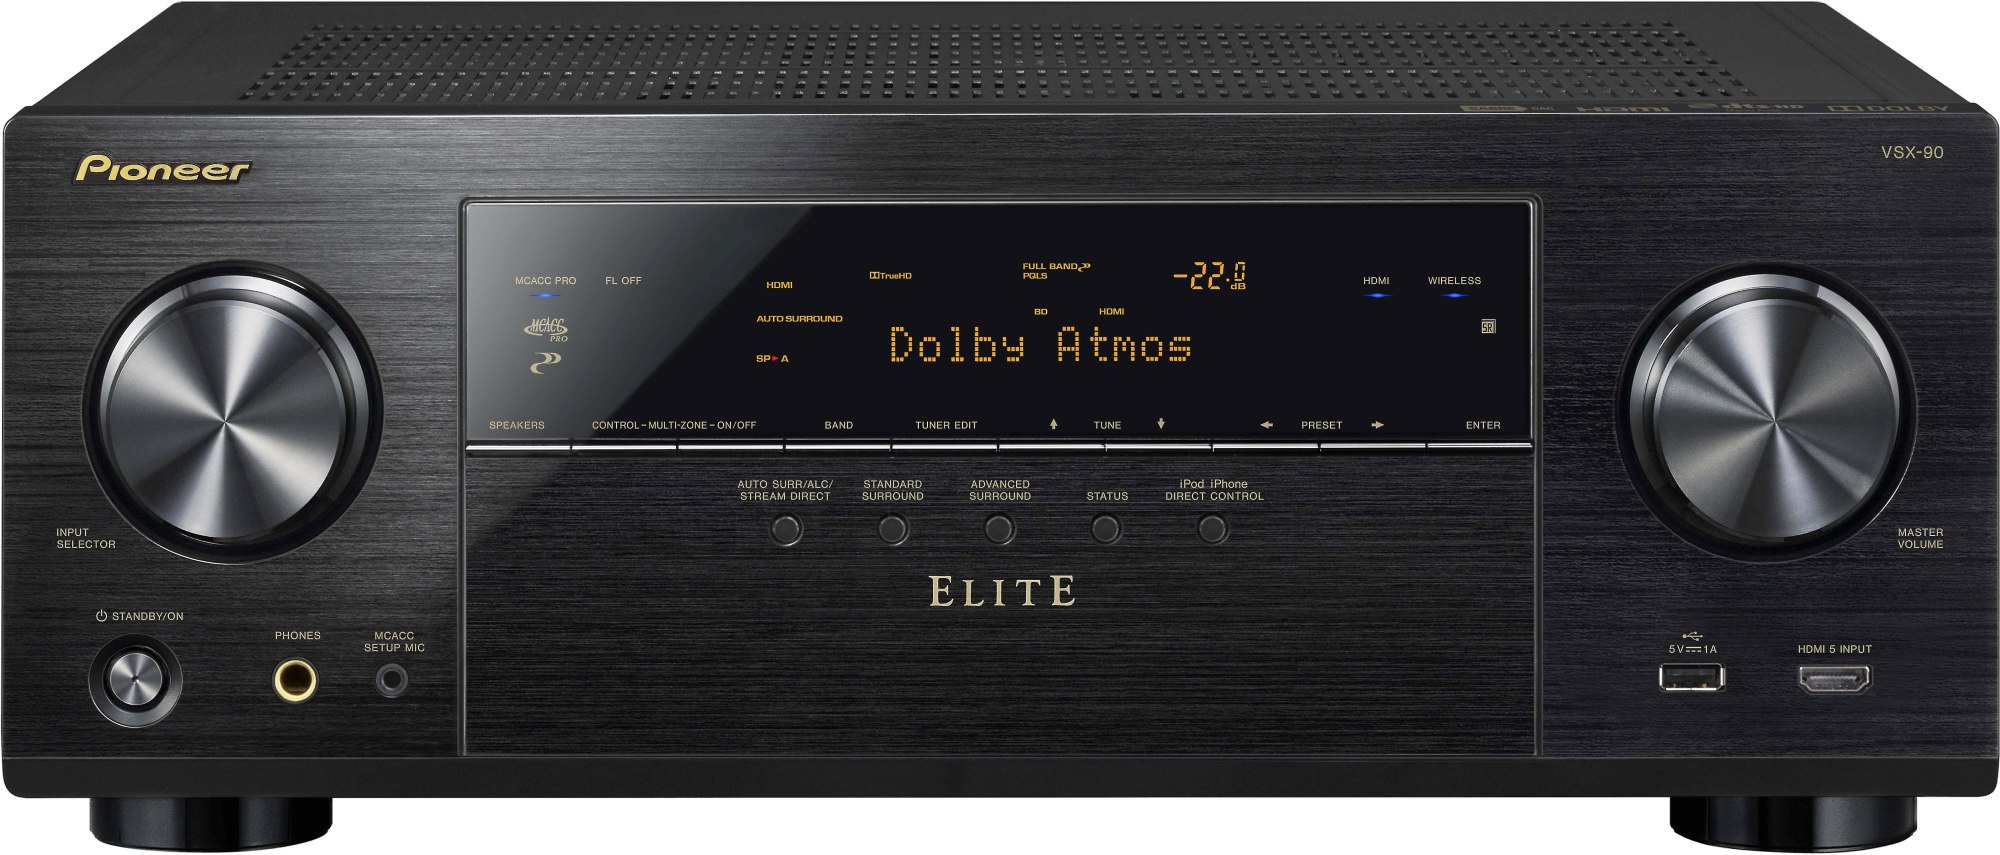 hight resolution of pioneer elite vsx 90 7 2 channel home theater receiver with wi fi bluetooth apple airplay and dolby atmos at crutchfield com